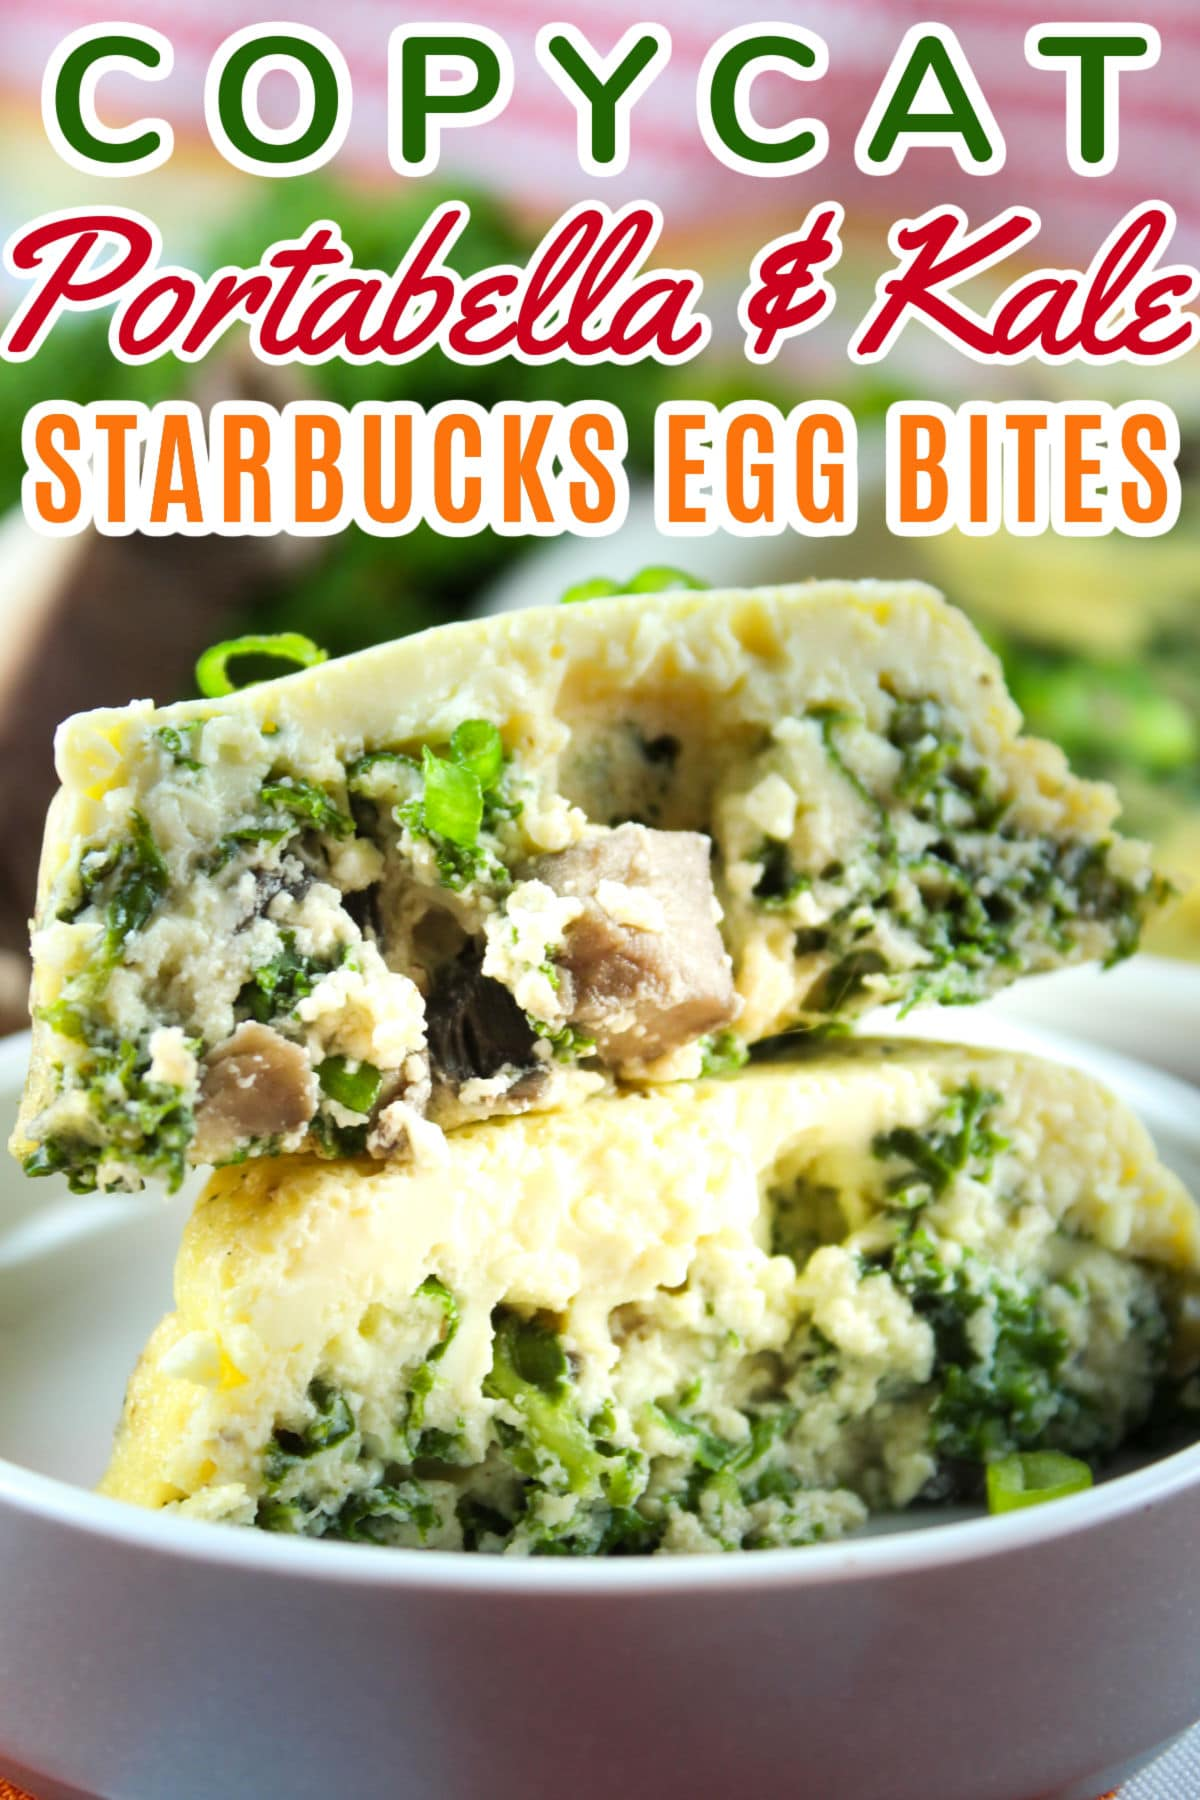 These Copycat Starbucks Portabella & Kale Egg Bites are probably the healthiest breakfast I've had in forever! I put my Weight Watchers spin on to lighten them up a bit. :-) The Portabella and Kale are a copycat of their latest version - they also have Bacon & Gruyere and Egg White & Roasted Red Pepper.  via @foodhussy